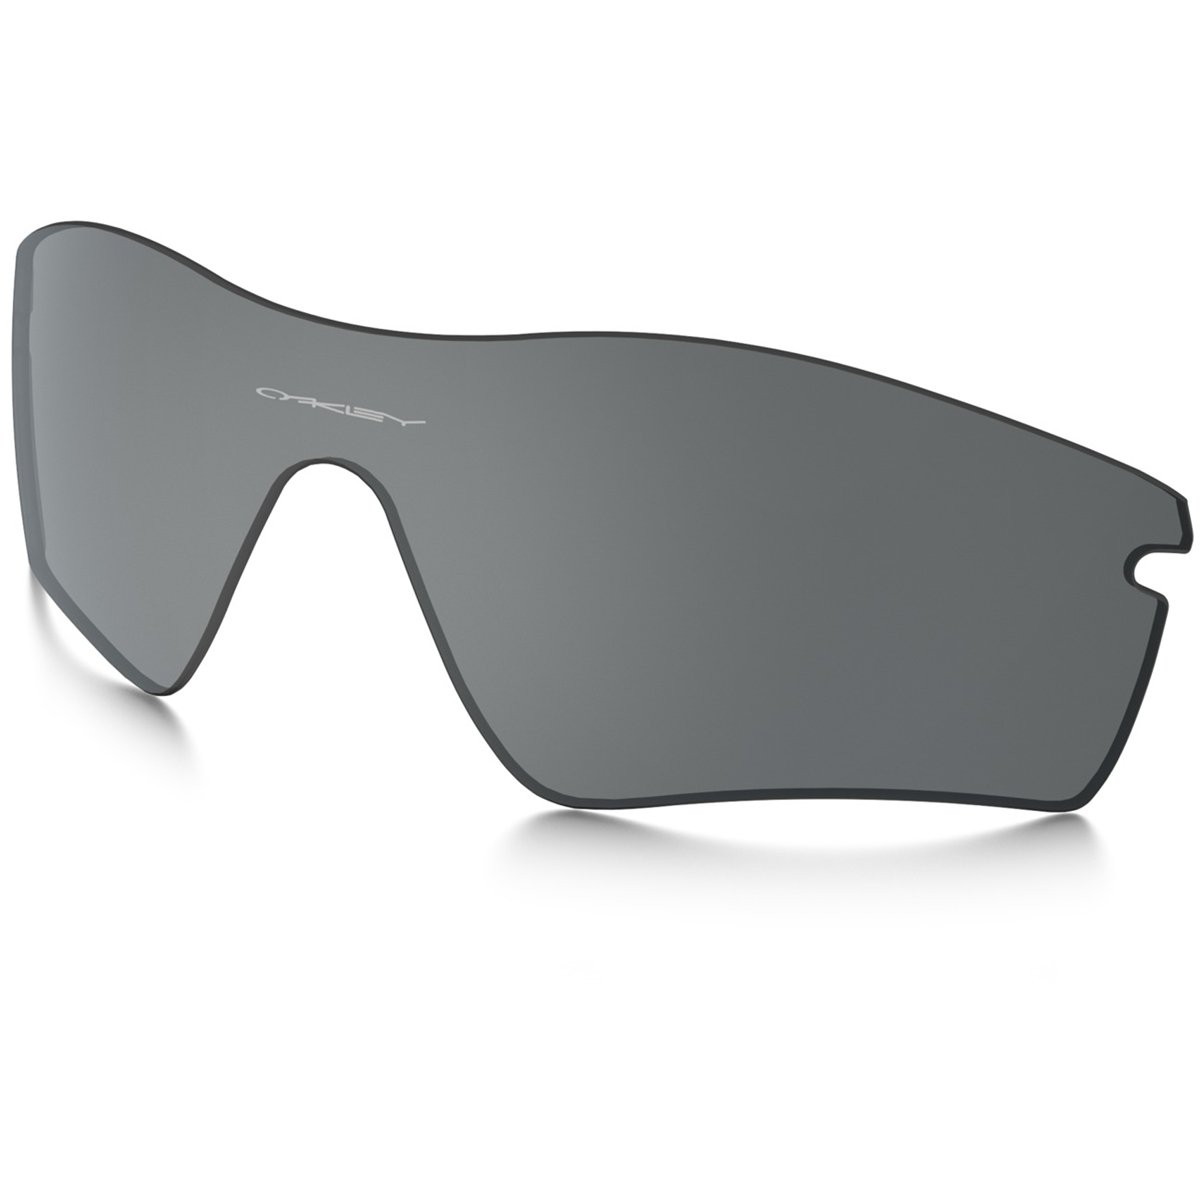 Oakley Radar 11-271 Polarized Replacement Lens,Multi Frame/Black Lens,One Size by Oakley